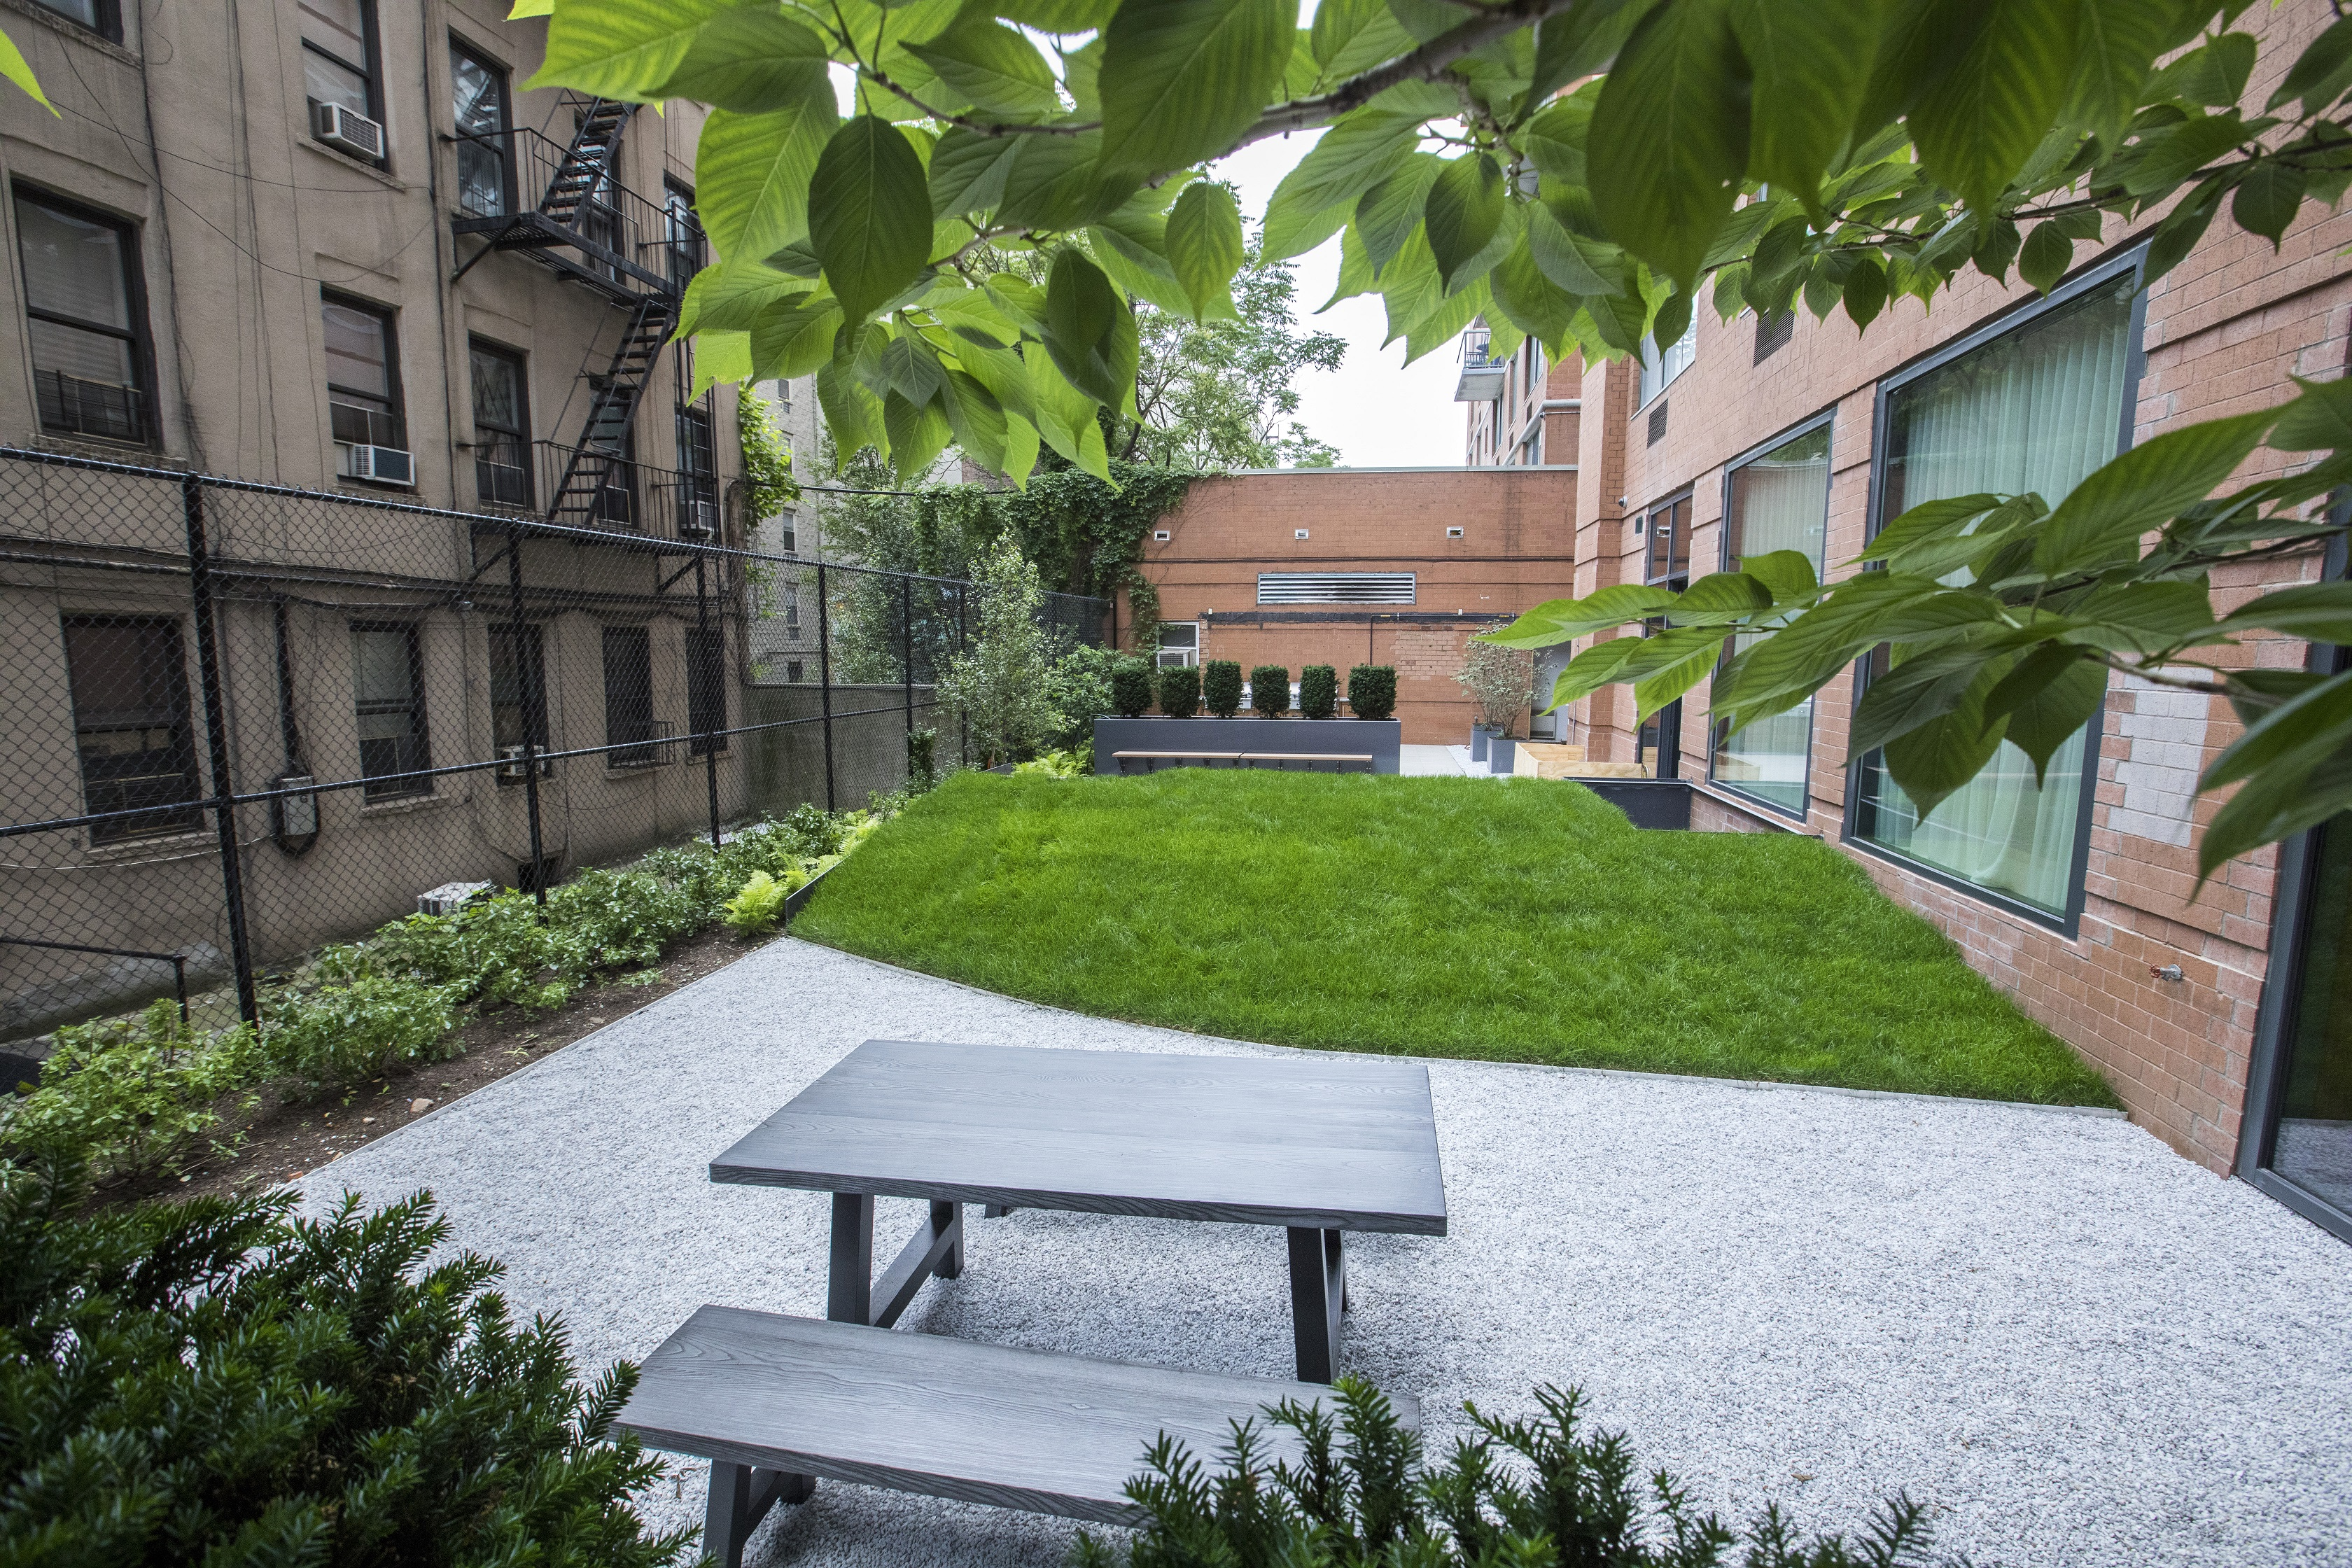 A quite break with a side of fresh air is delivered through this refined courtyard.